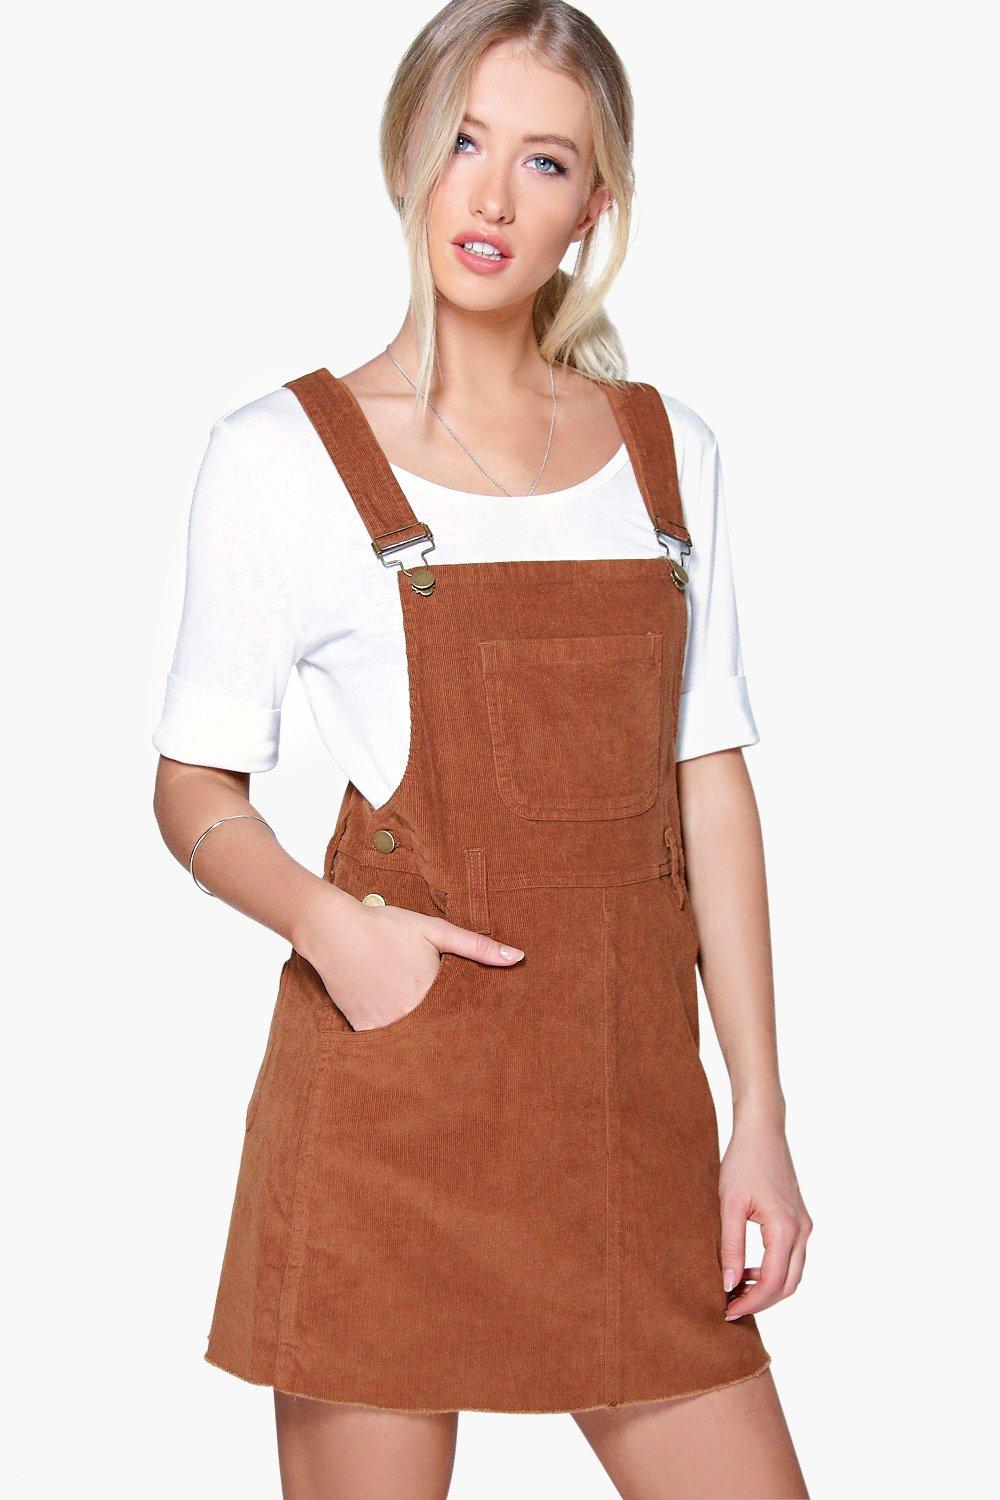 Now you can look like you're headed to Coachella every day, with our range of women's pinafore dresses. We are low-key living for cord dungaree dresses, which you can team up with your fave long sleeve turtleneck to create the kind of look that screams laid-back, boho-chic.